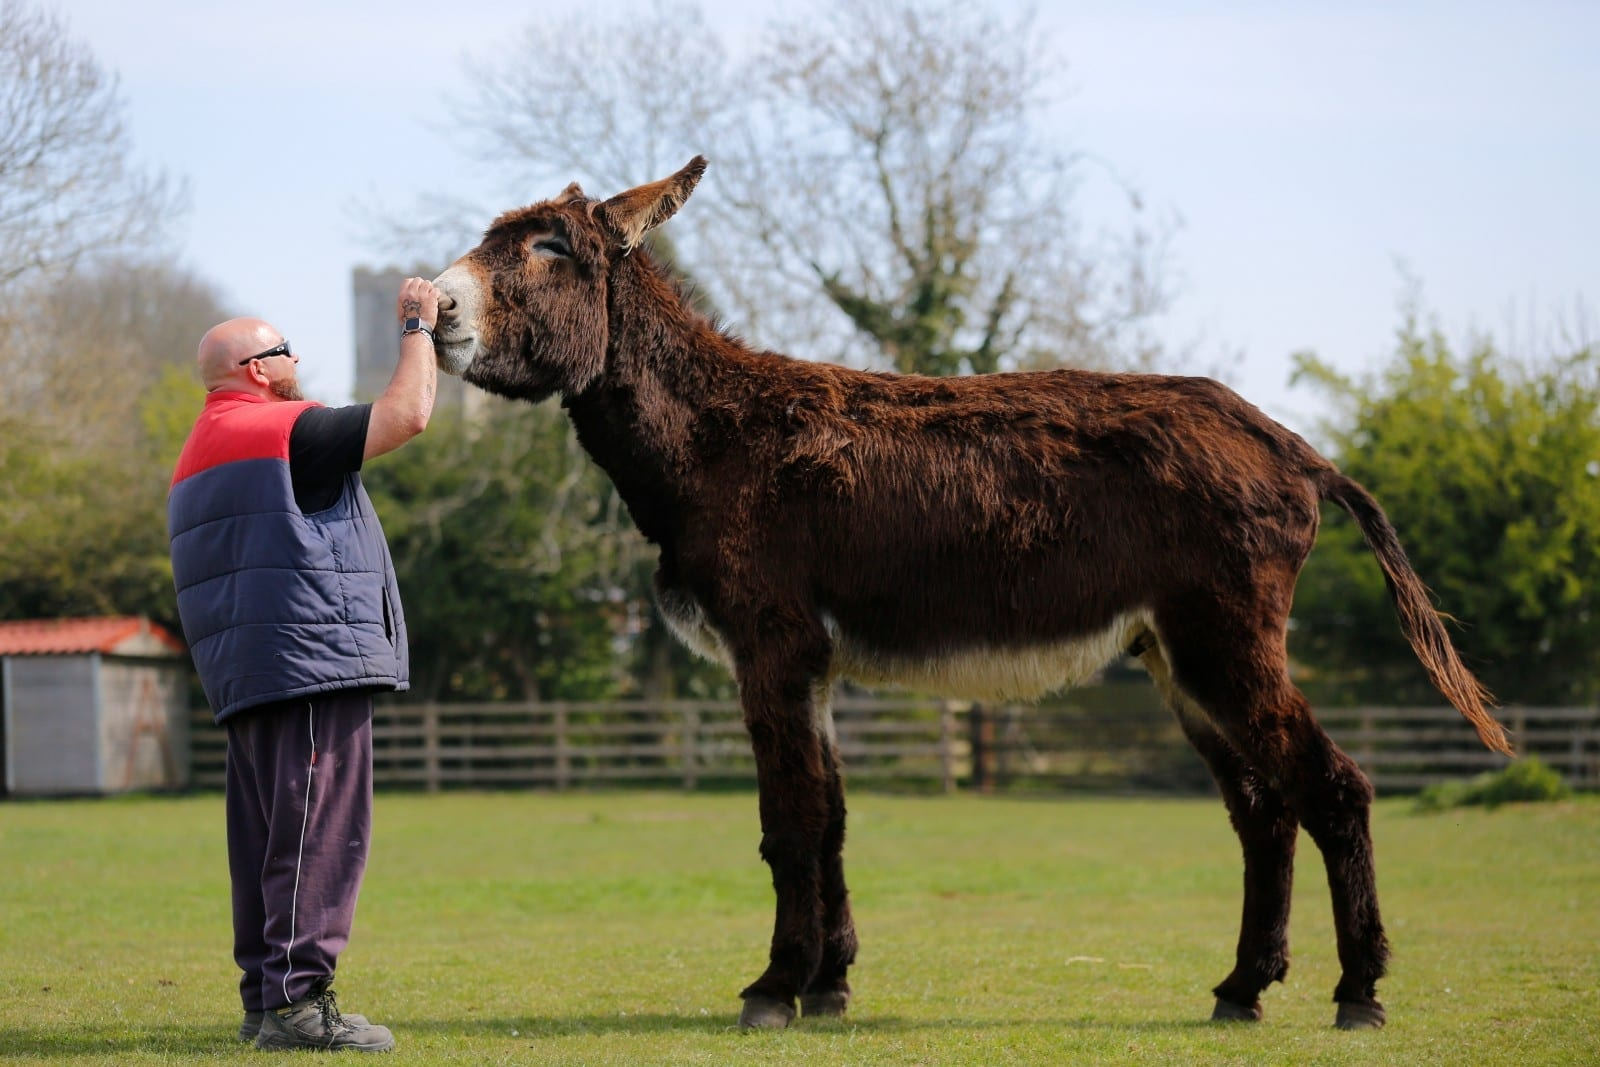 Britain's Biggest DONKEY Is Edging Closer To Becoming The World's Tallest – And Now Measures Just A Quarter Of An Inch Off The Record